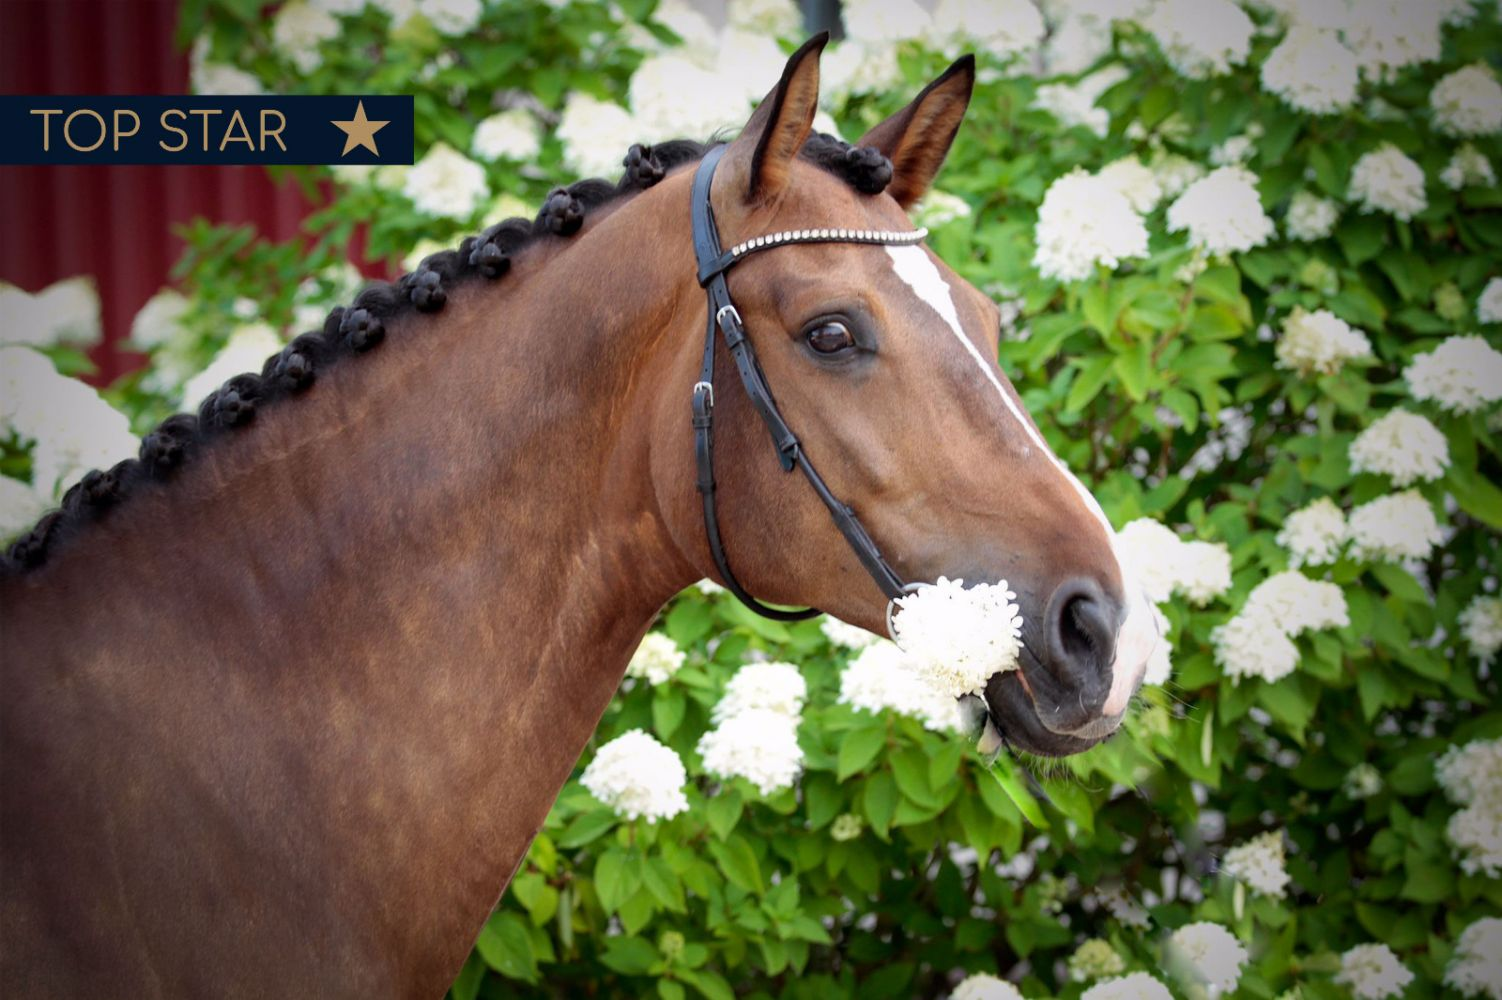 Baltic Horse Auction: A new and rising destination for quality horses